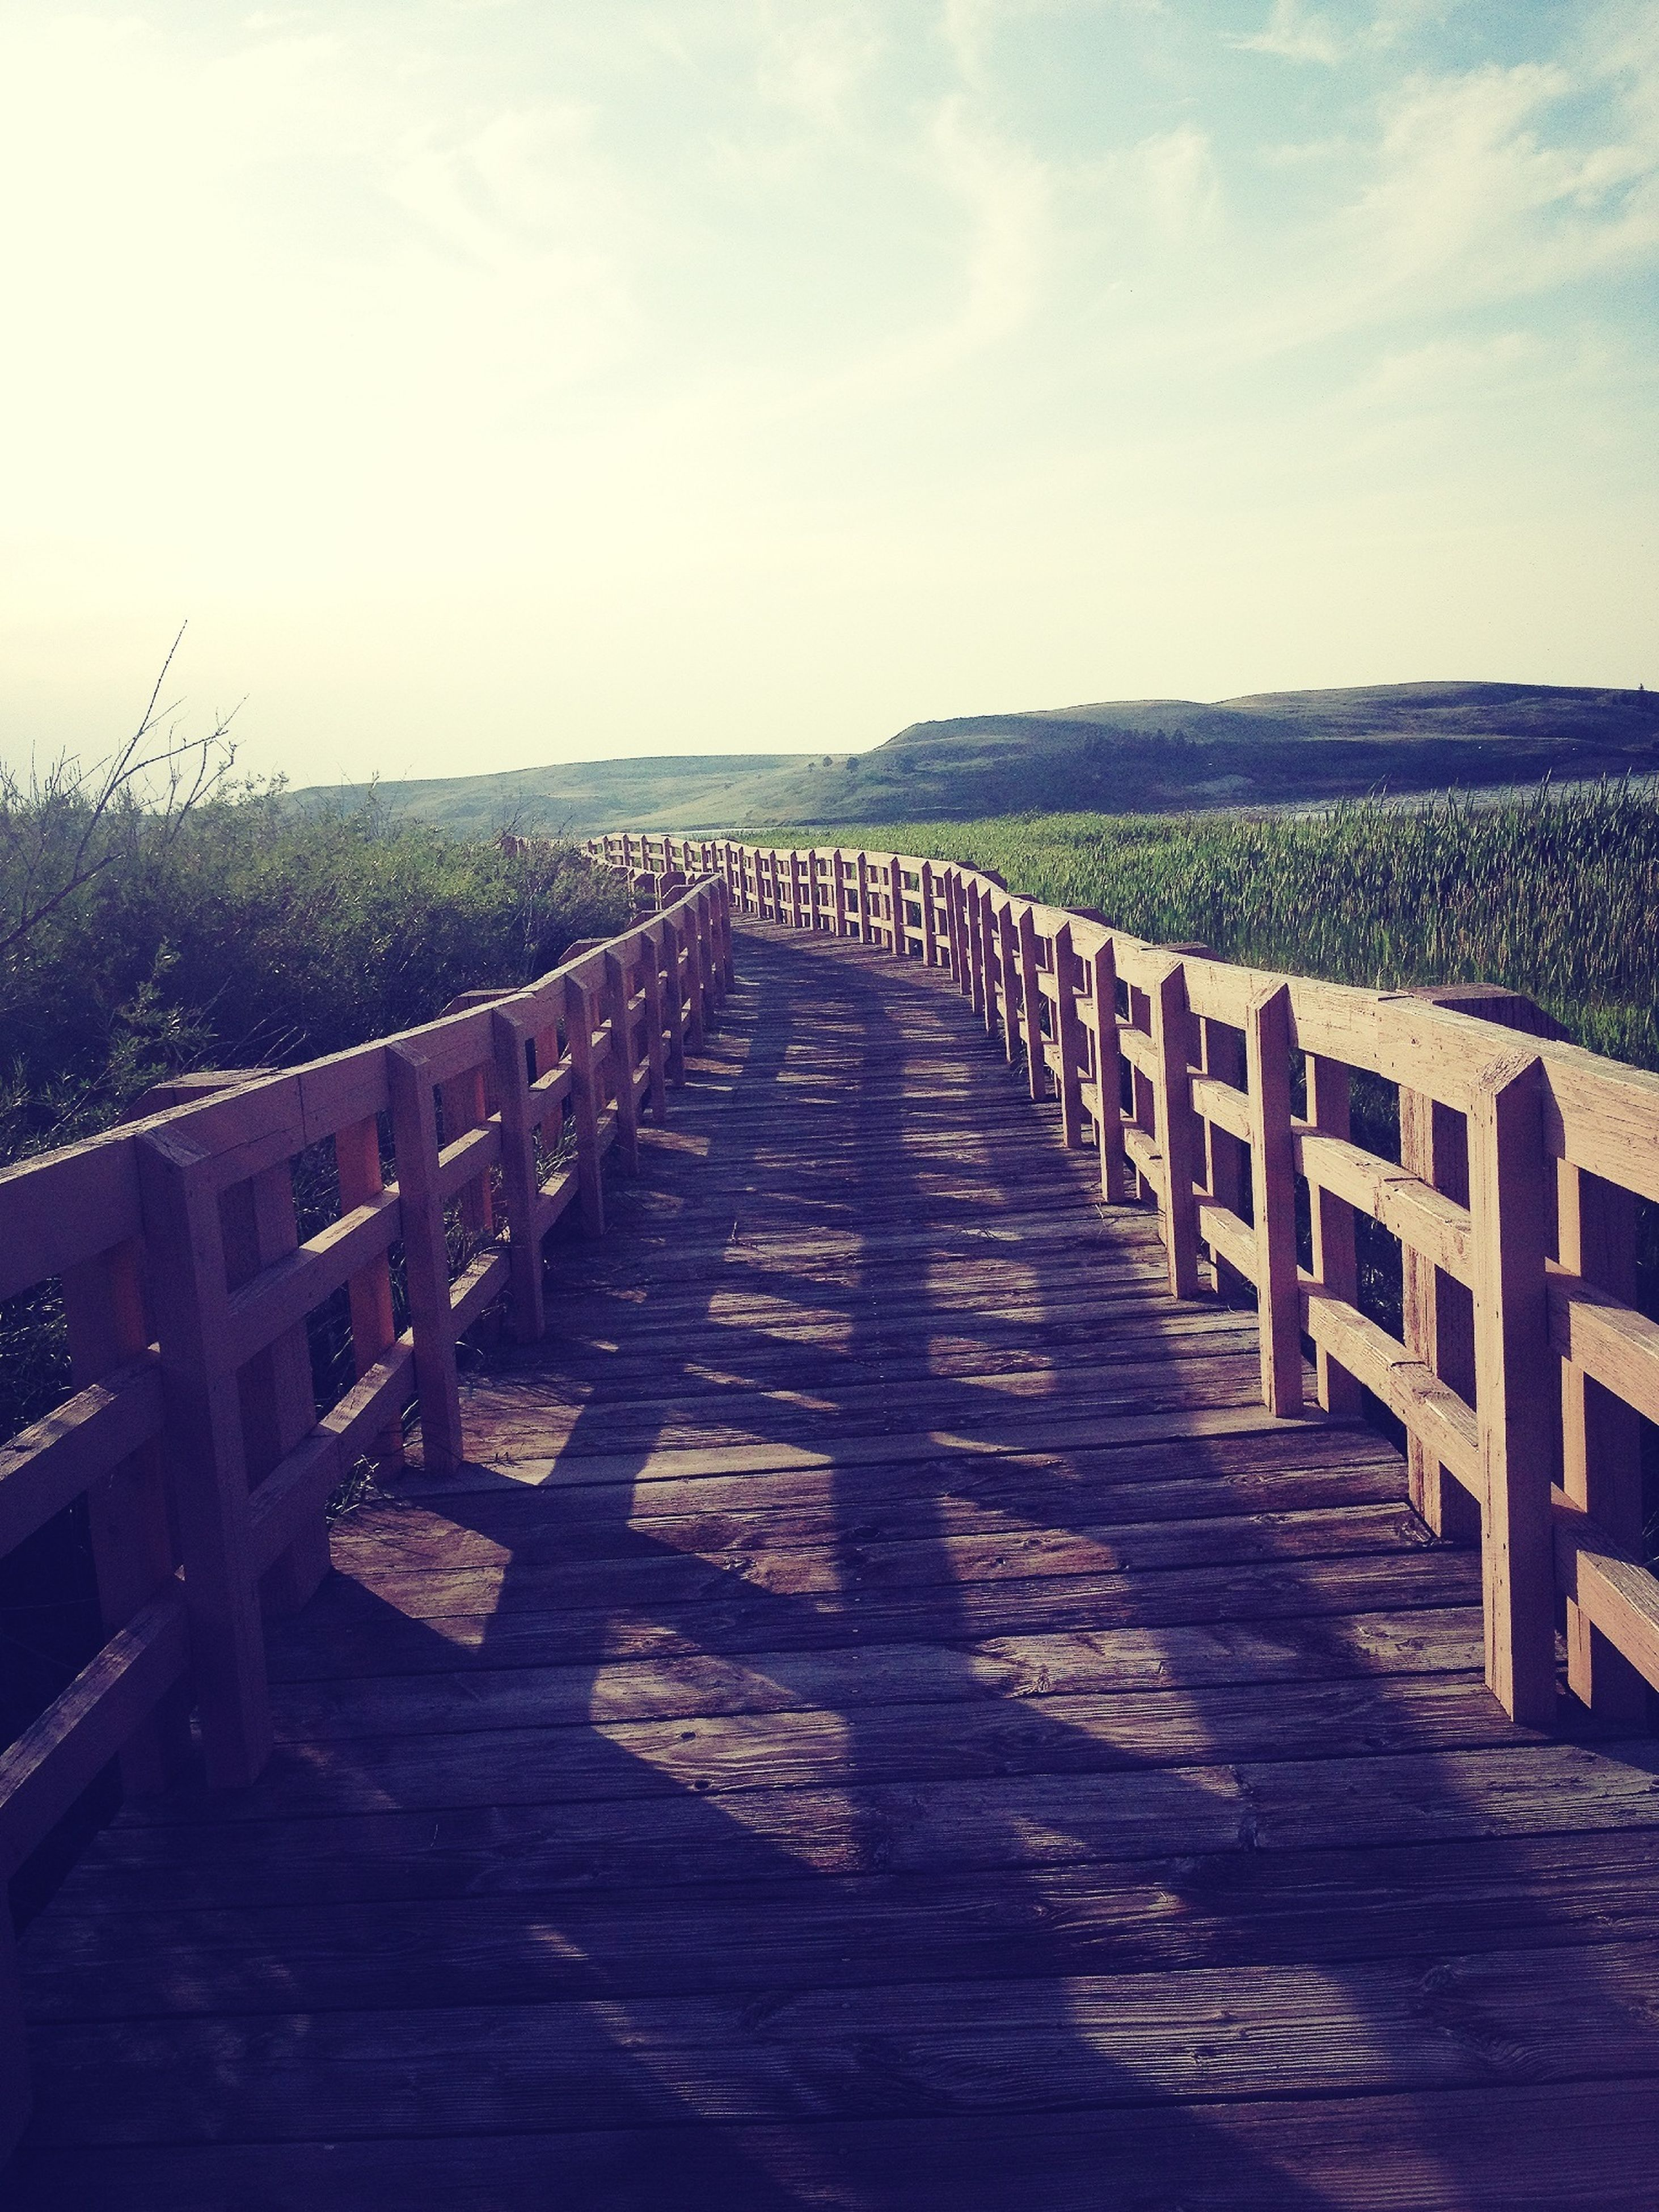 the way forward, diminishing perspective, sky, vanishing point, railing, tranquility, tranquil scene, wood - material, in a row, nature, fence, scenics, long, sunlight, cloud - sky, landscape, boardwalk, day, outdoors, beauty in nature